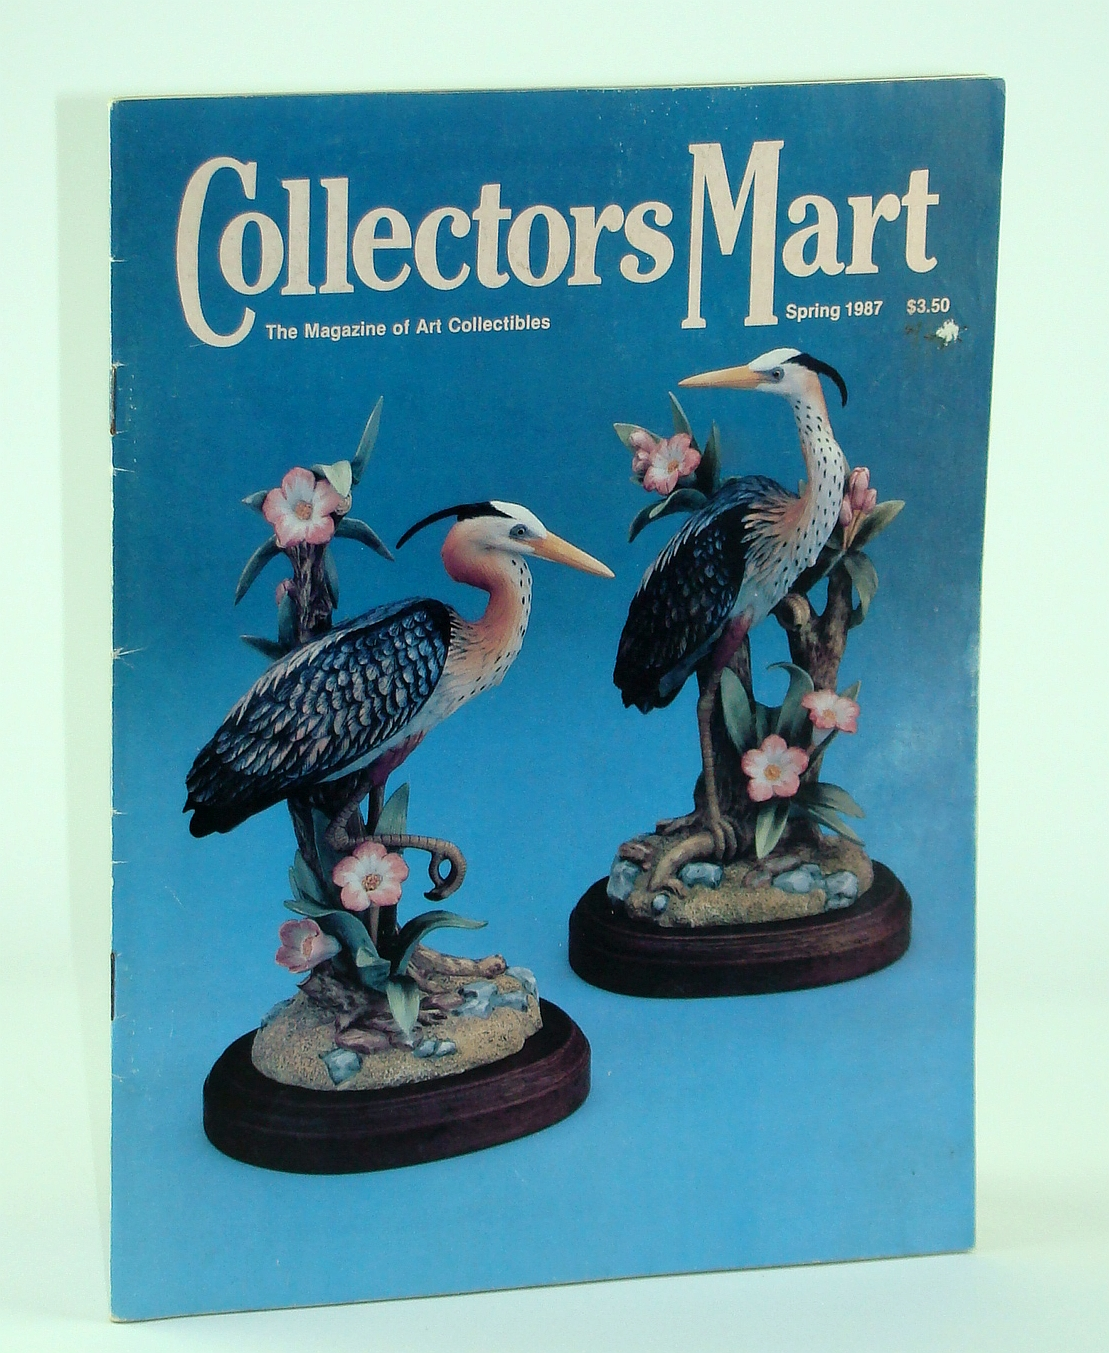 Collector's Mart - The Magazine of Art Collectibles, Spring 1987, Volume XI, No. 3 Spring 1987 - Sandra Kuck, Bailey, Patricia Black; Jones, Susan